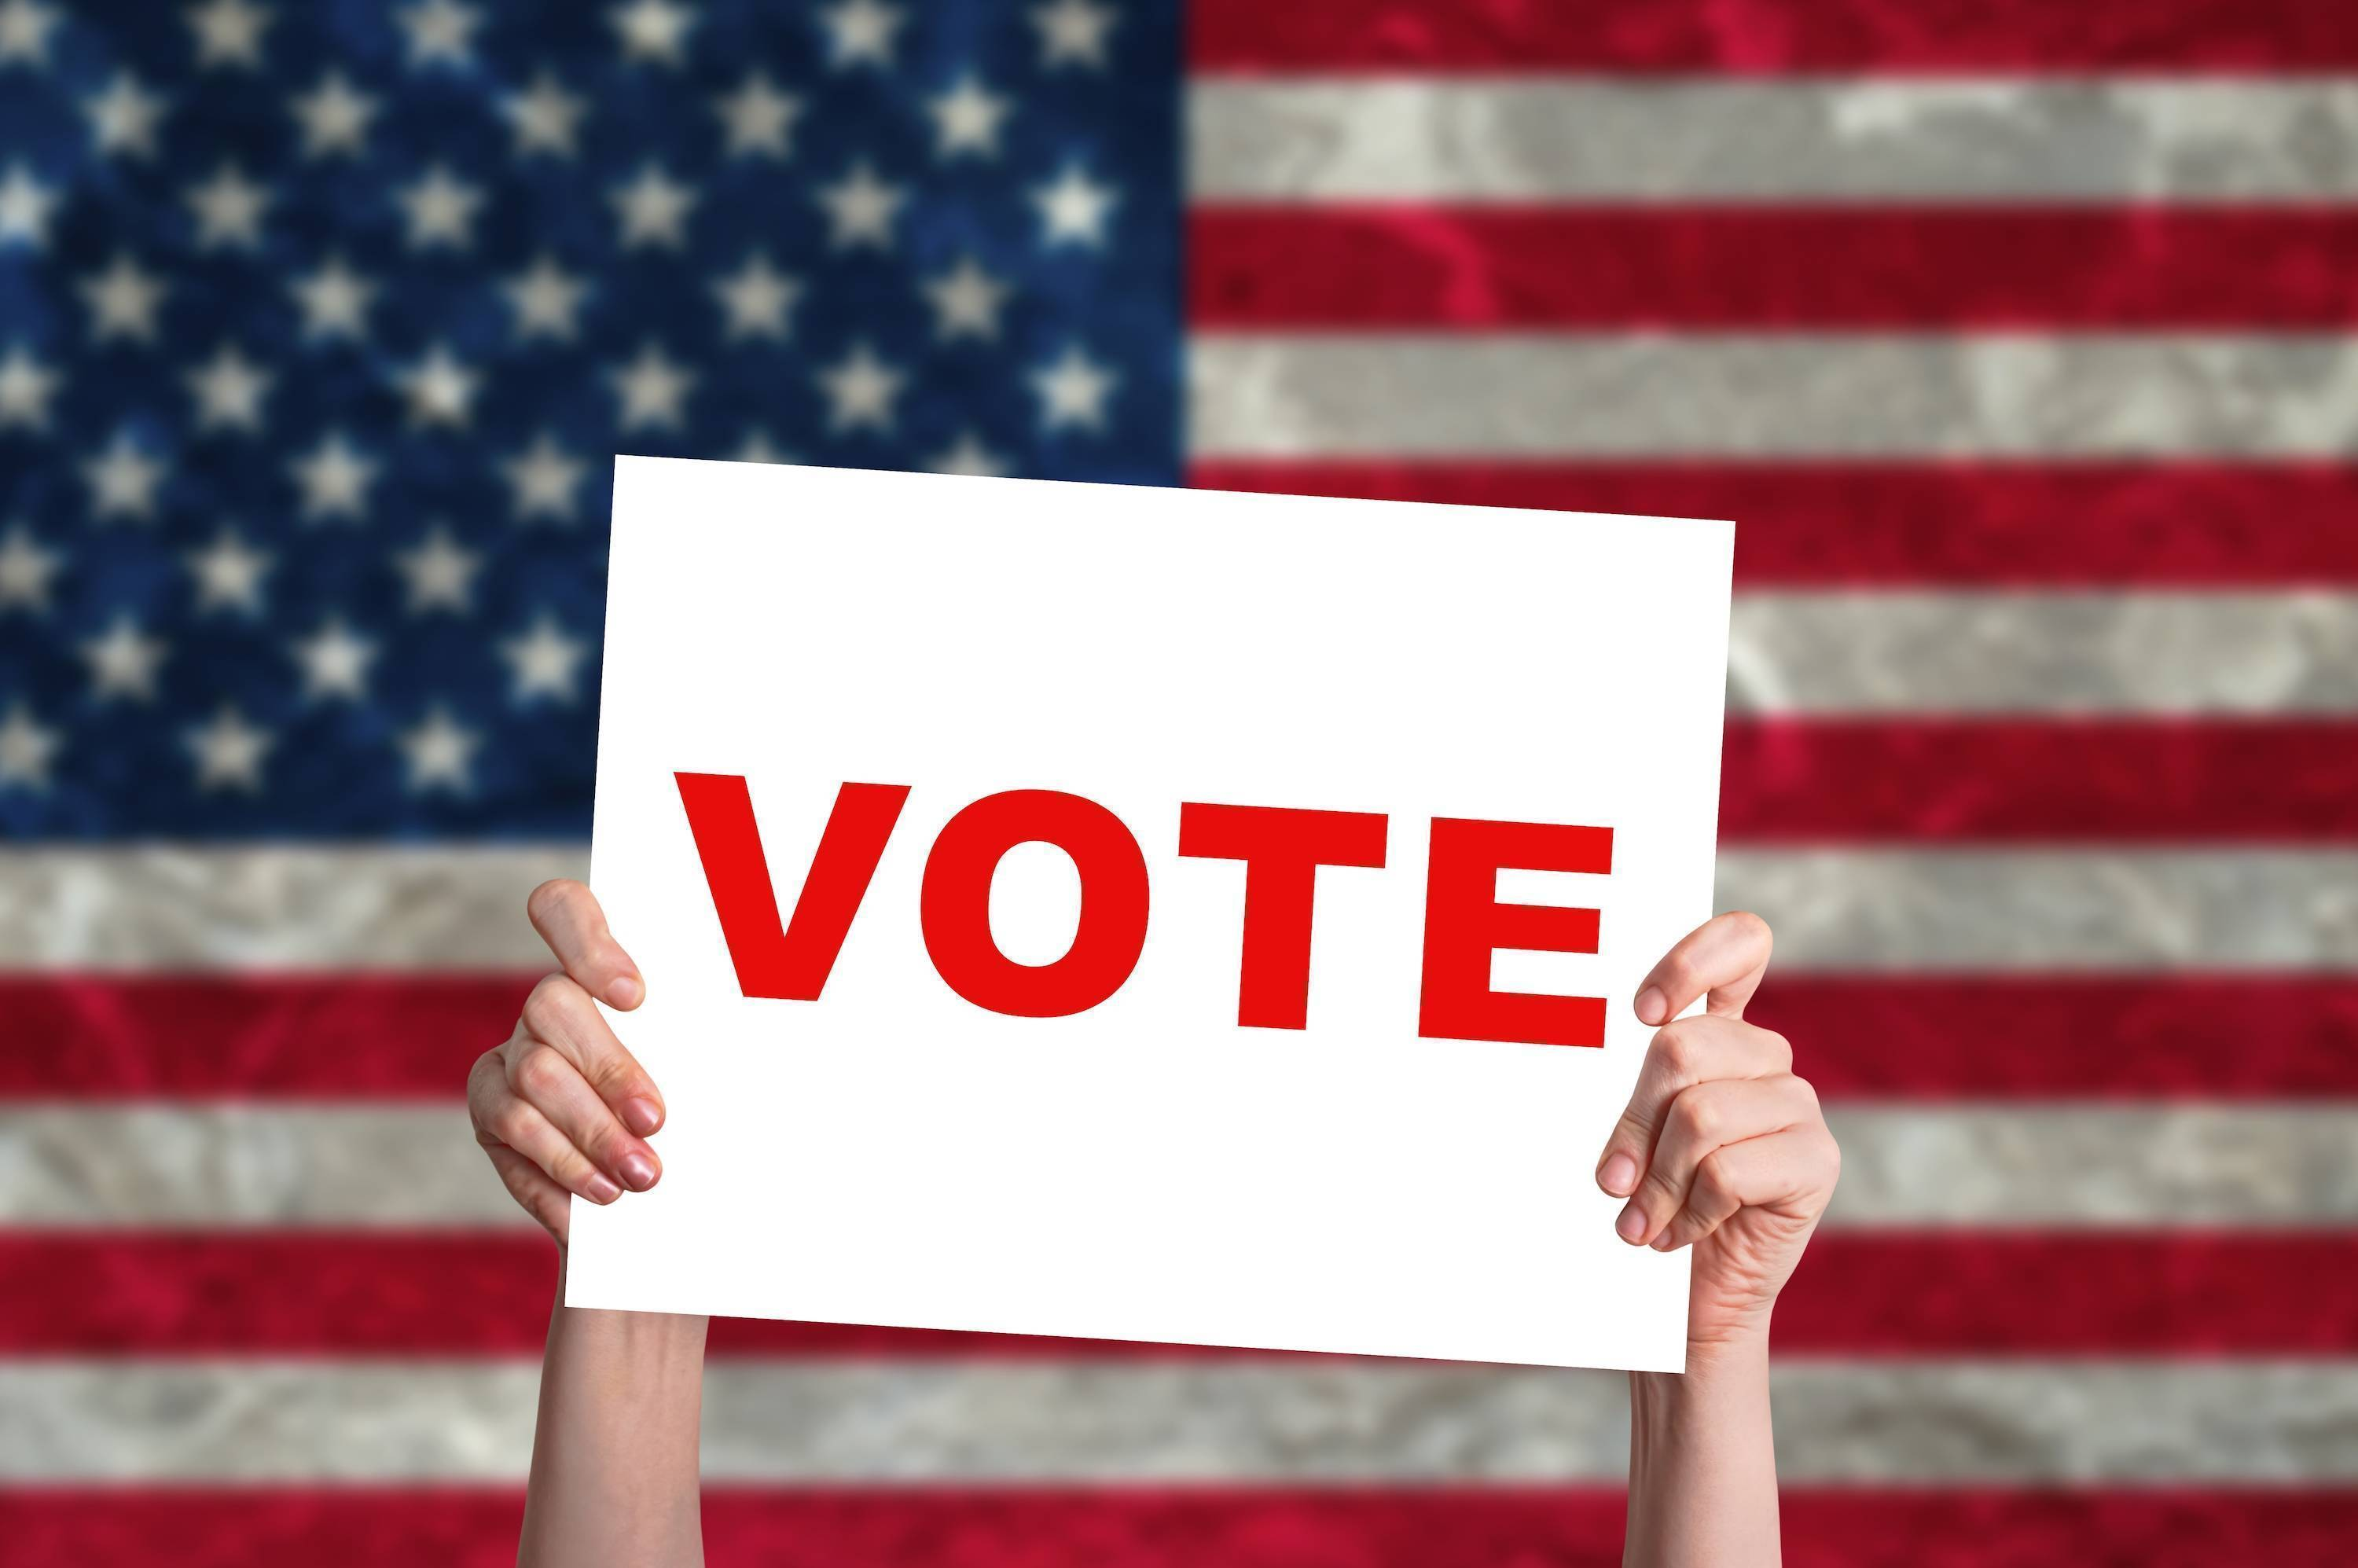 New Jersey Voters Registration Forms Now Available in Arabic